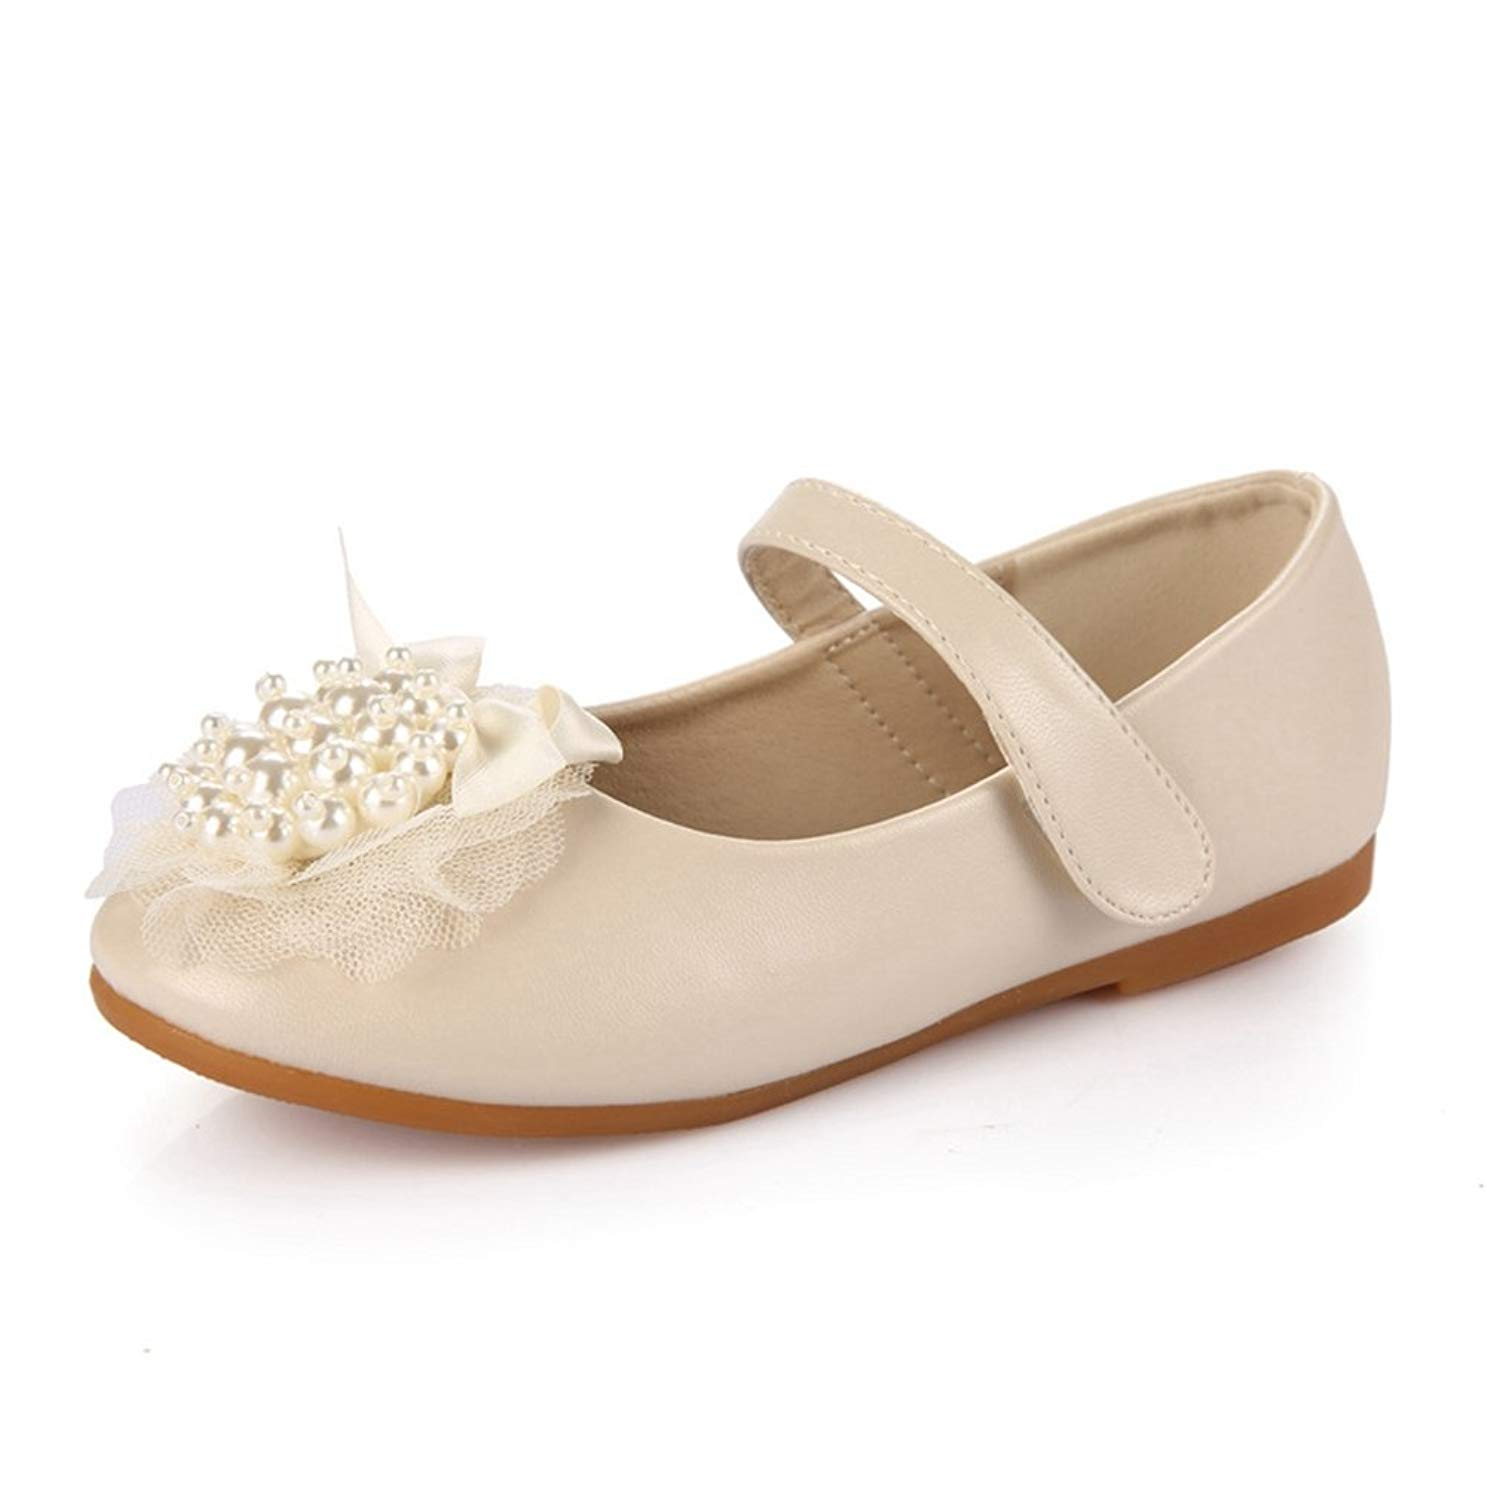 Buy CYBLING Kids Girls Mary Jane Flats Wedding Party Ballet ...